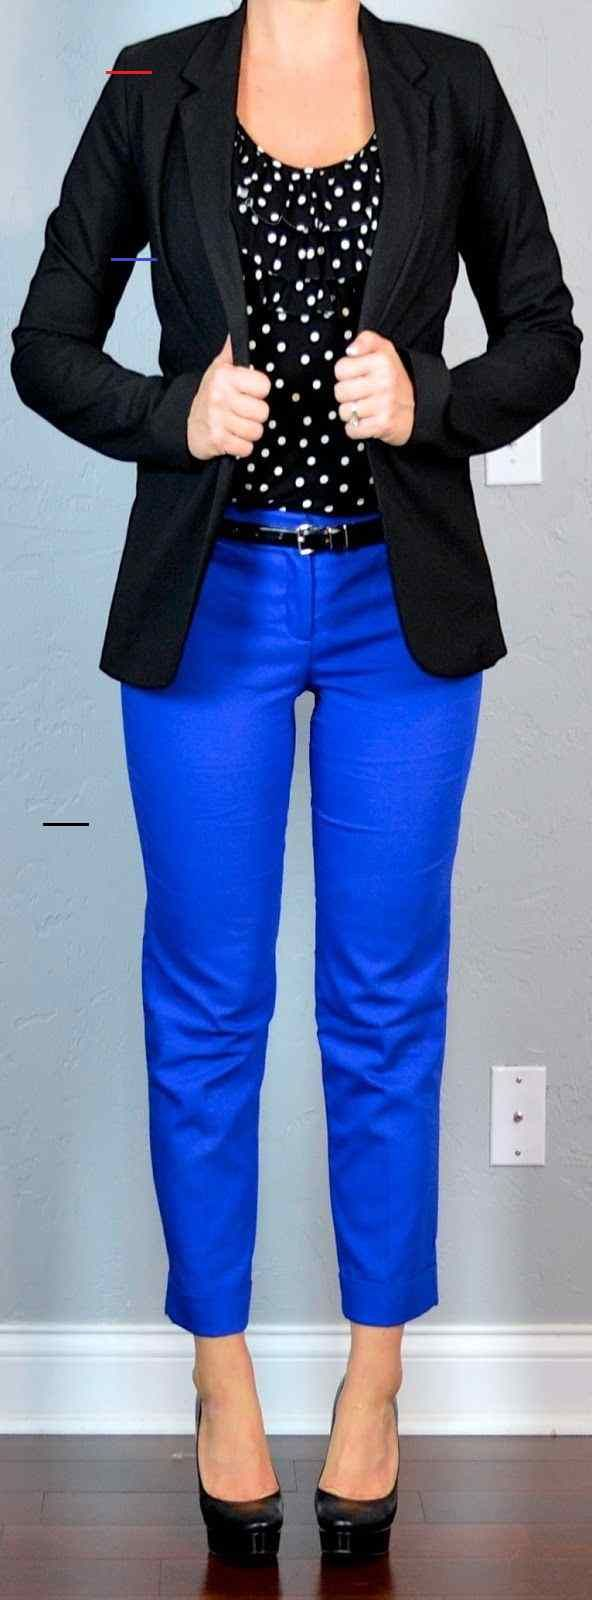 polka-dot top, black jacket, blue cropped pants polka-dot top, black jacket, blue cropped pants Outfit Posts: outfit post: polka-dot top, black jacket, blue cropped pants...  #Black #Blue #cropped<br>